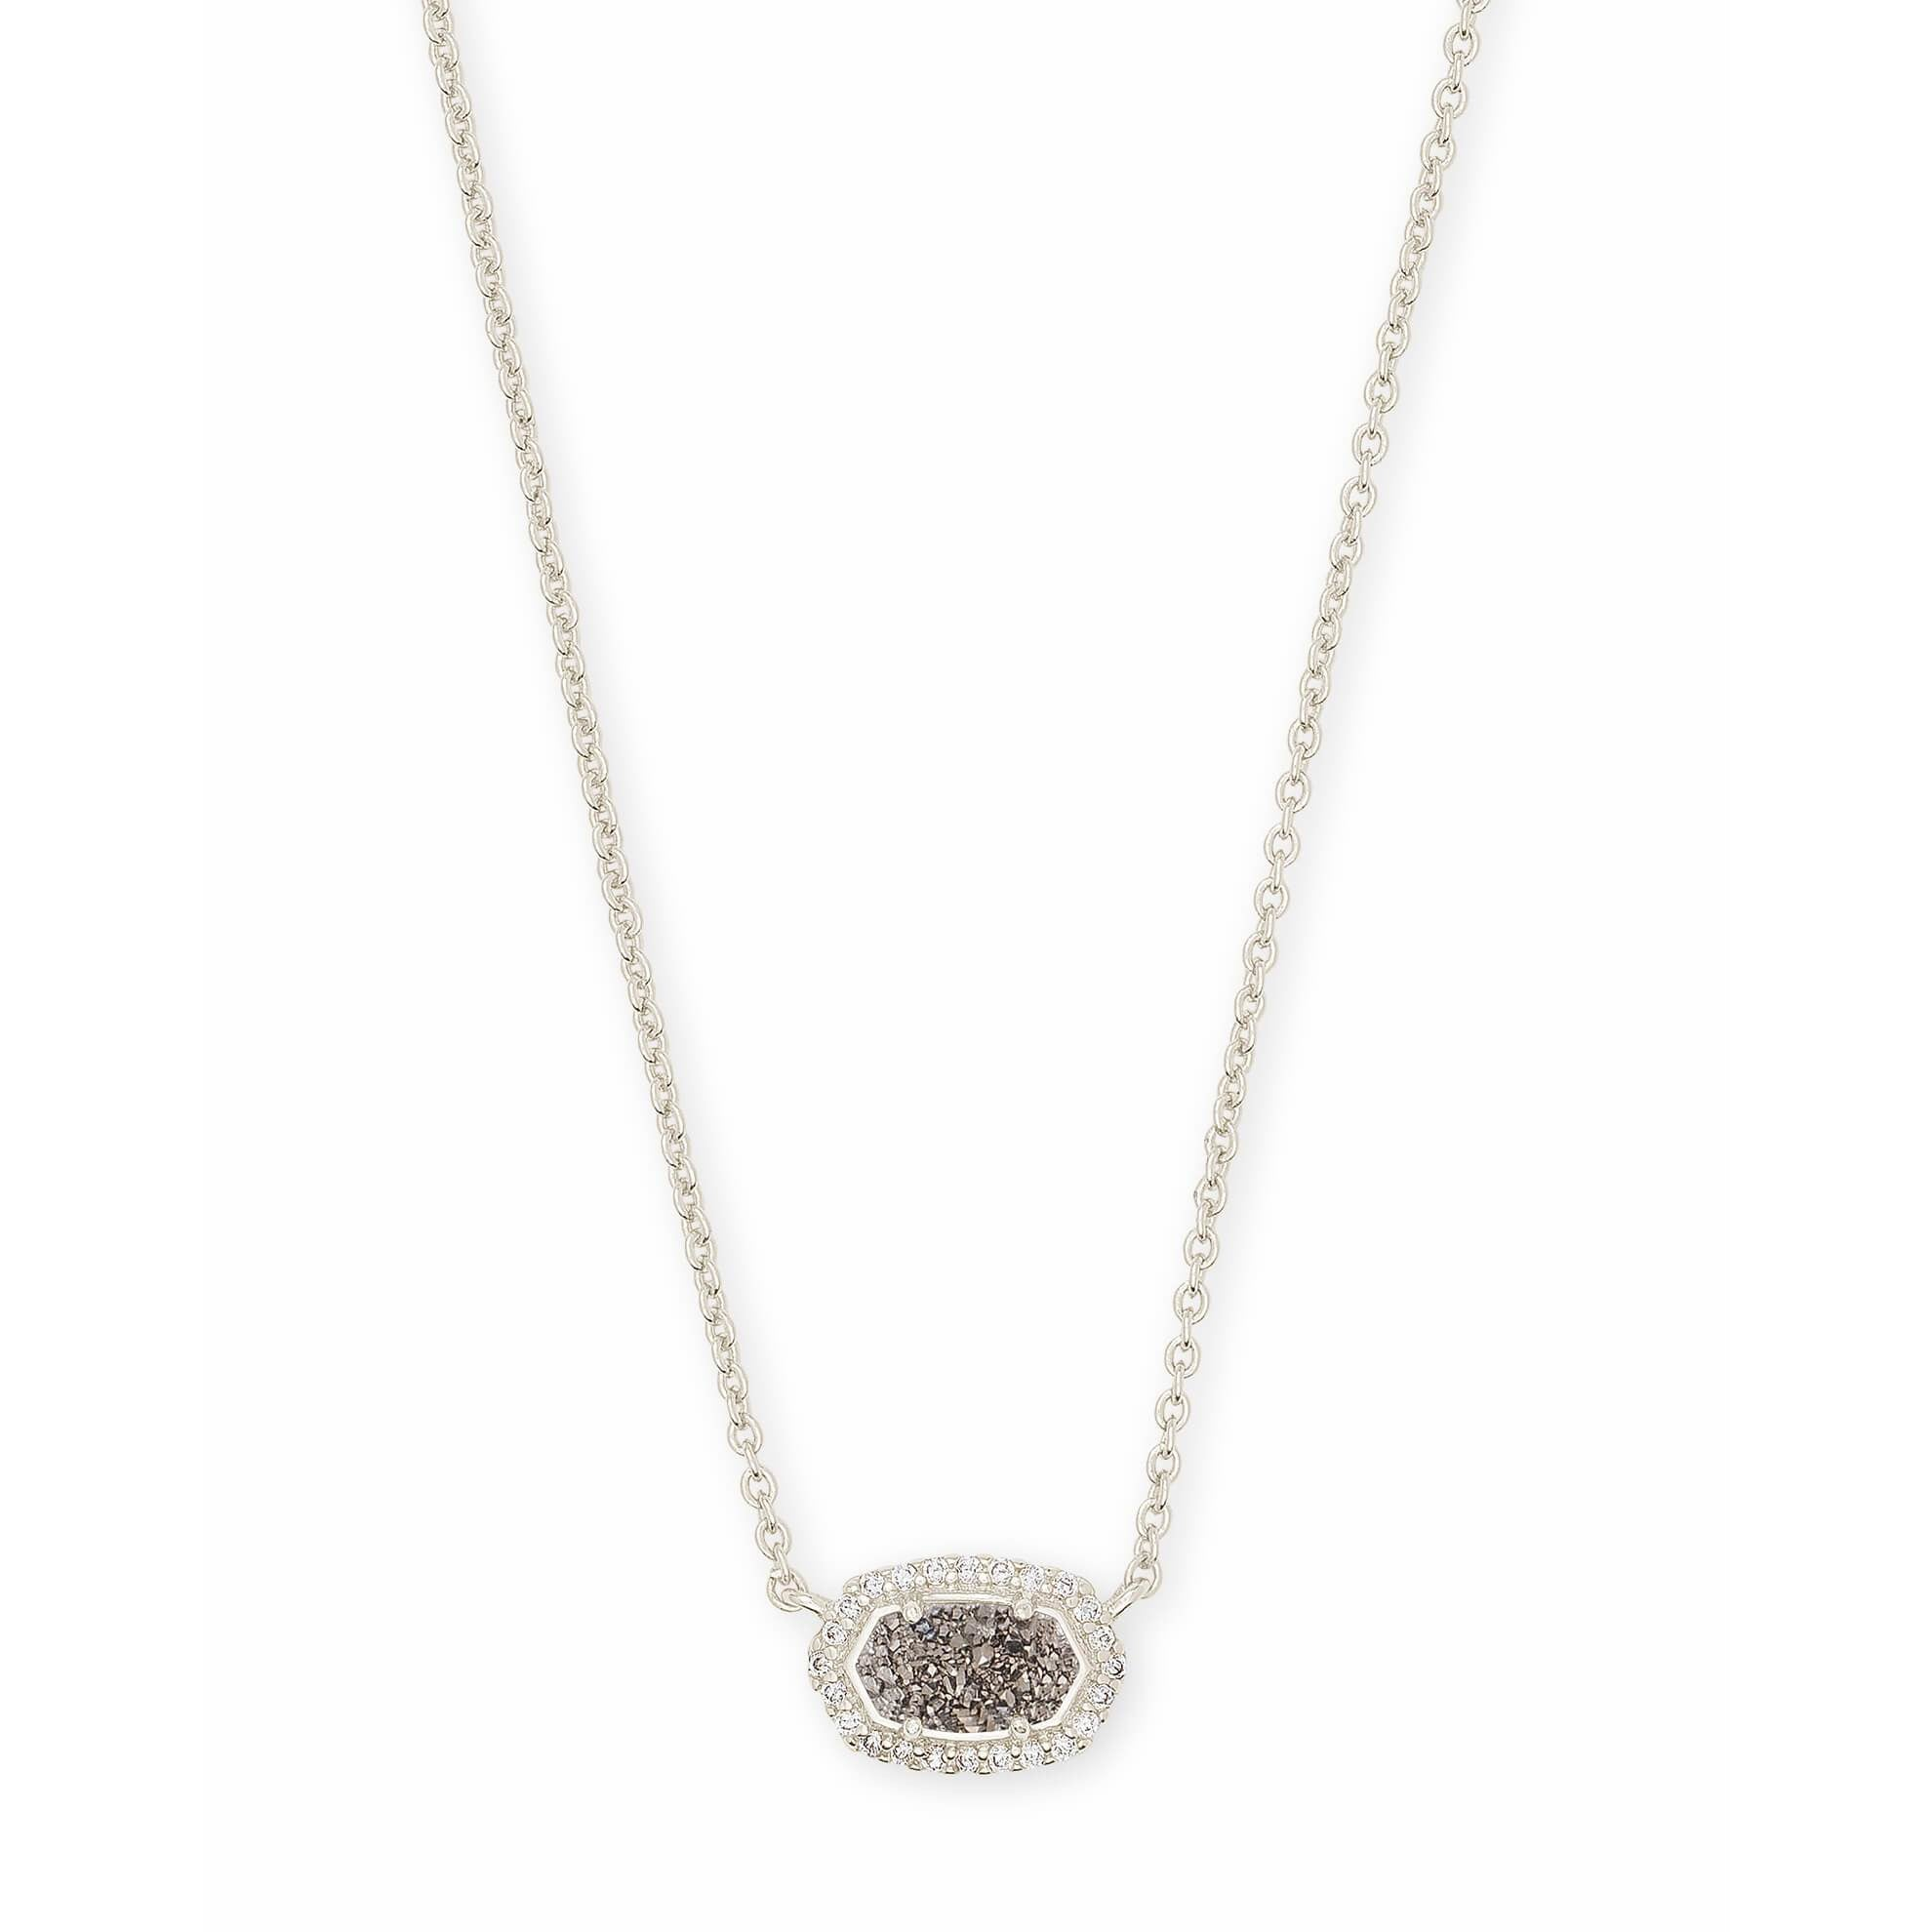 Kendra Scott - Chelsea Silver Pendant Necklace In Platinum Drusy